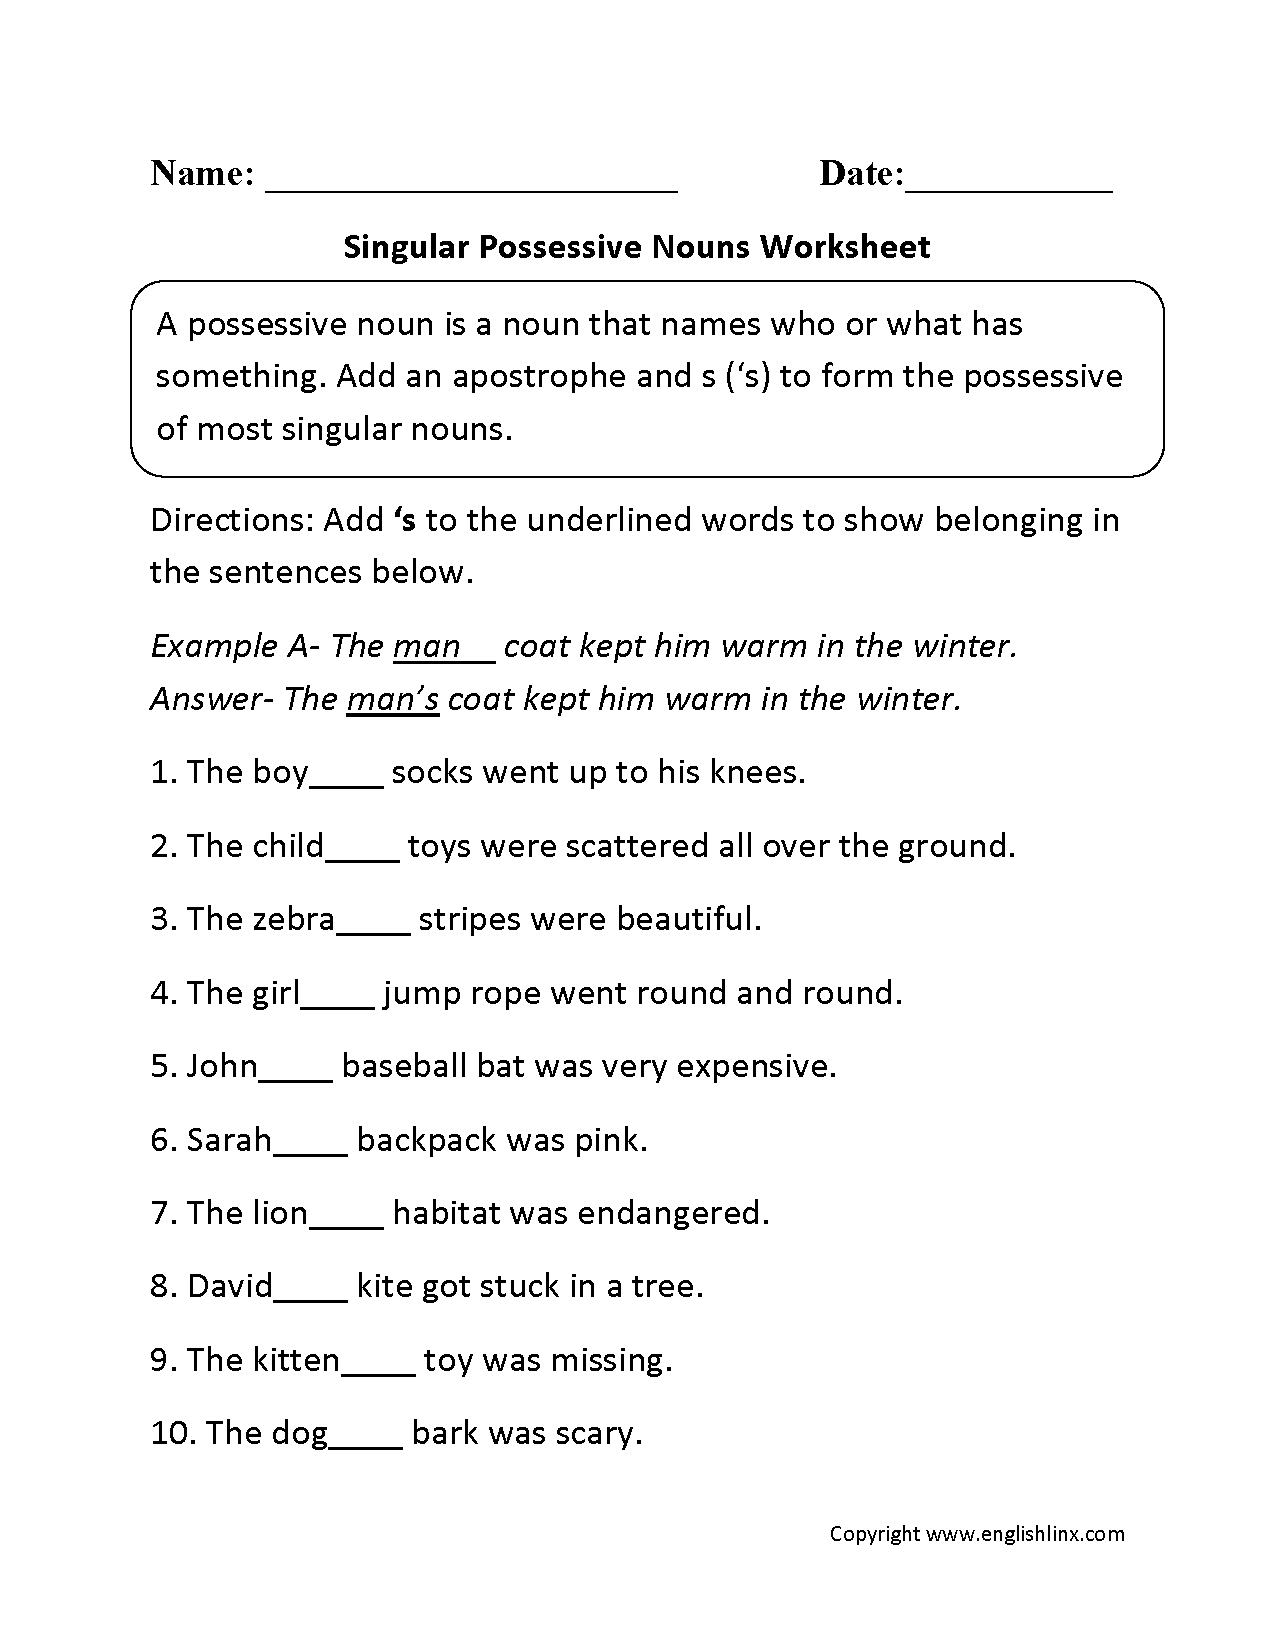 Aldiablosus  Pleasant Nouns Worksheets  Possessive Nouns Worksheets With Exciting Possessive Nouns Worksheets With Amazing Parts Of Speech Worksheets Th Grade Also Affixes And Roots Worksheets In Addition Storytelling Worksheet And Relative Clauses Worksheet As Well As Preschool Worksheets Free Printables Additionally End Marks Worksheet From Englishlinxcom With Aldiablosus  Exciting Nouns Worksheets  Possessive Nouns Worksheets With Amazing Possessive Nouns Worksheets And Pleasant Parts Of Speech Worksheets Th Grade Also Affixes And Roots Worksheets In Addition Storytelling Worksheet From Englishlinxcom